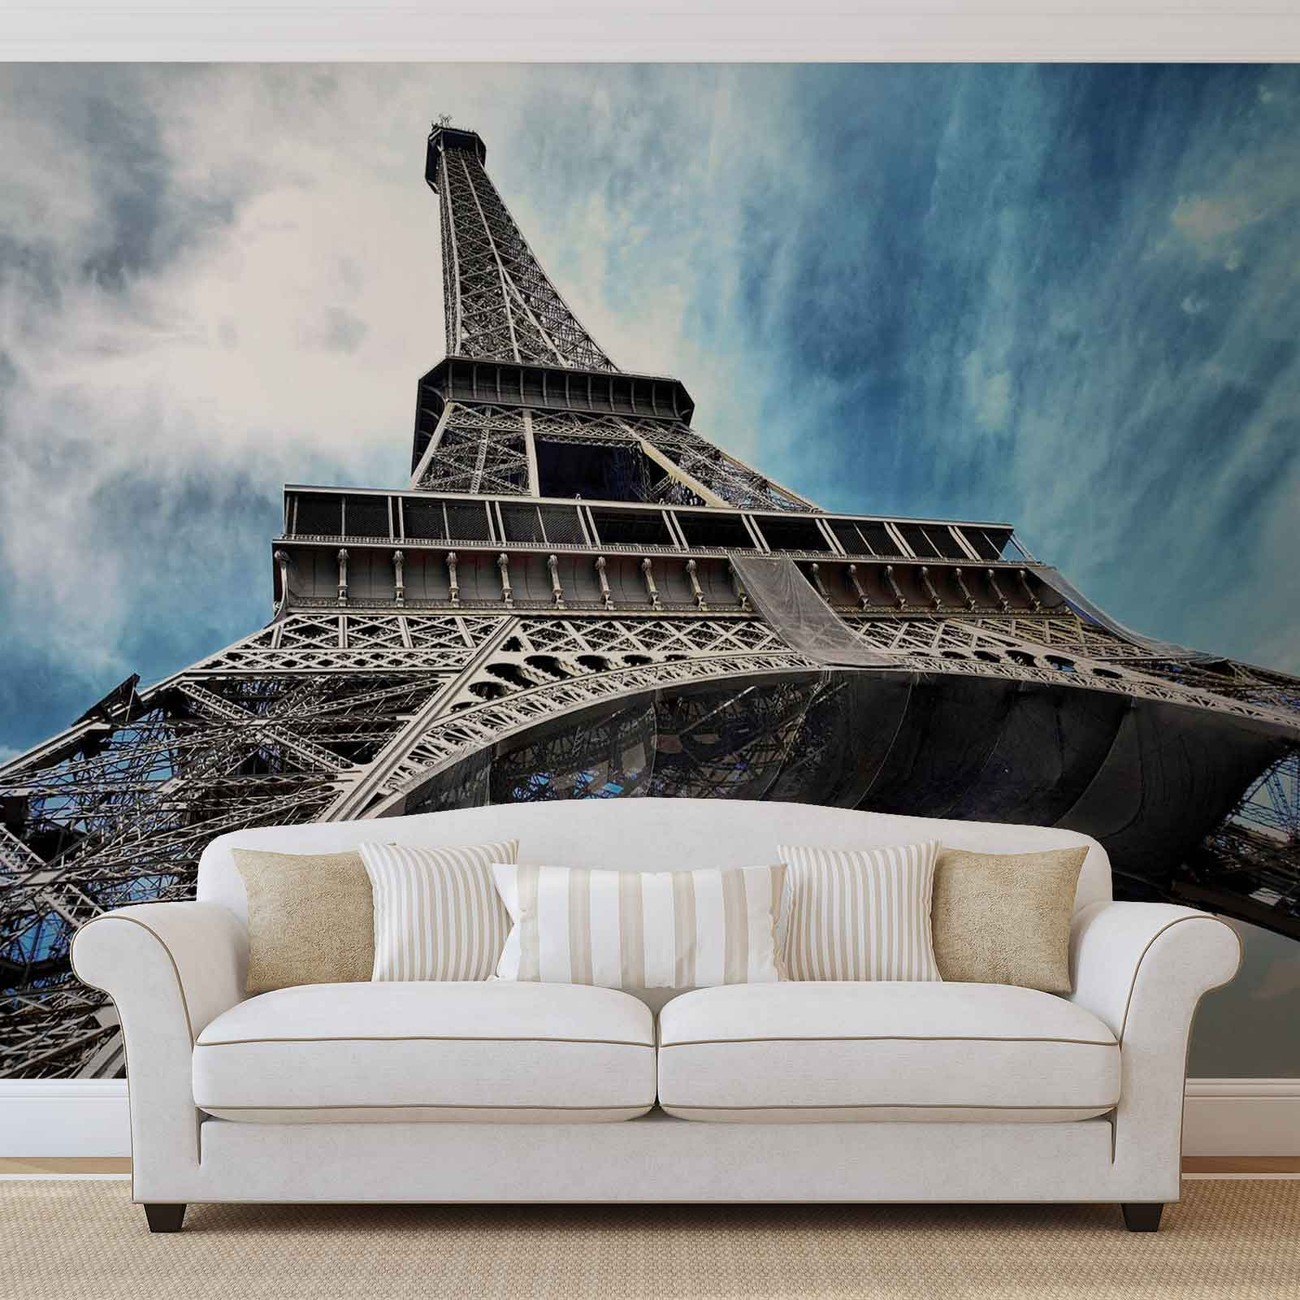 Eiffel tower paris wall paper mural buy at for Eiffel tower wall mural ikea